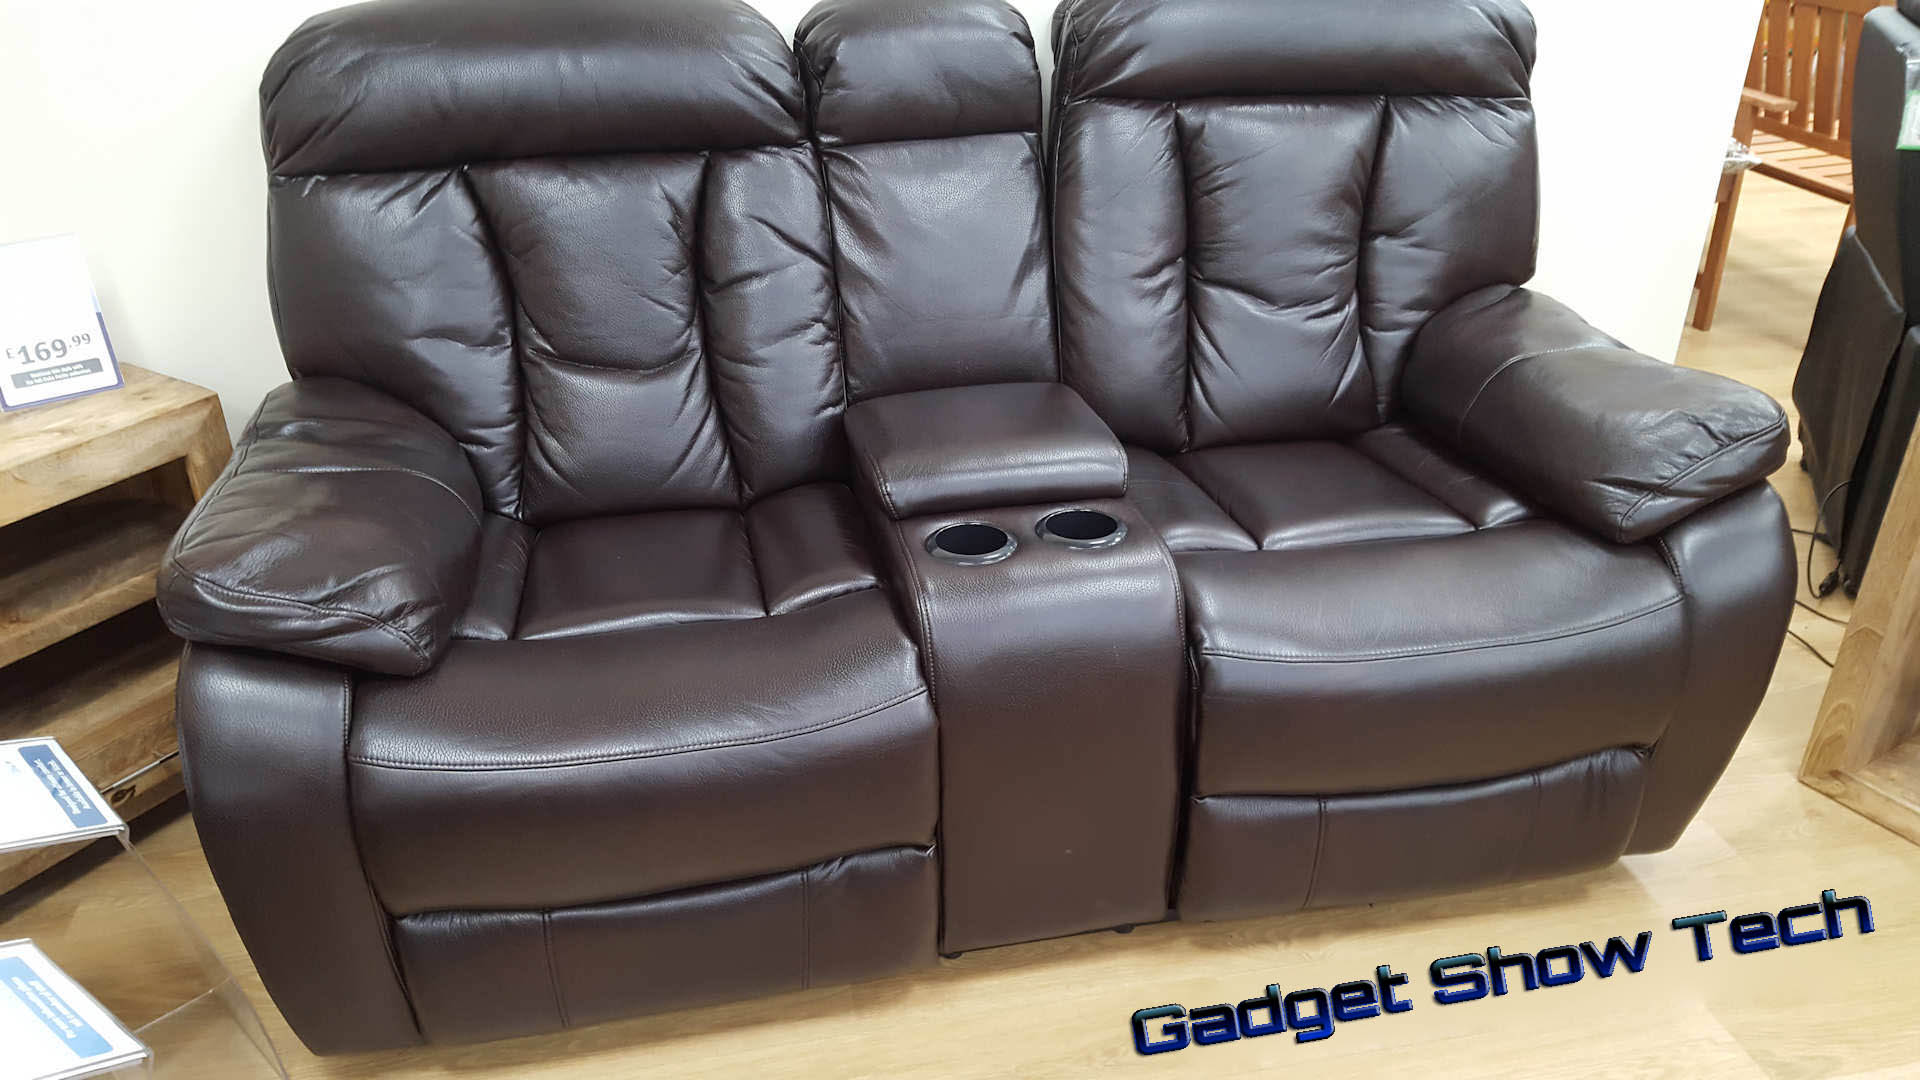 Woodville Two Seater Console Recliner sofa